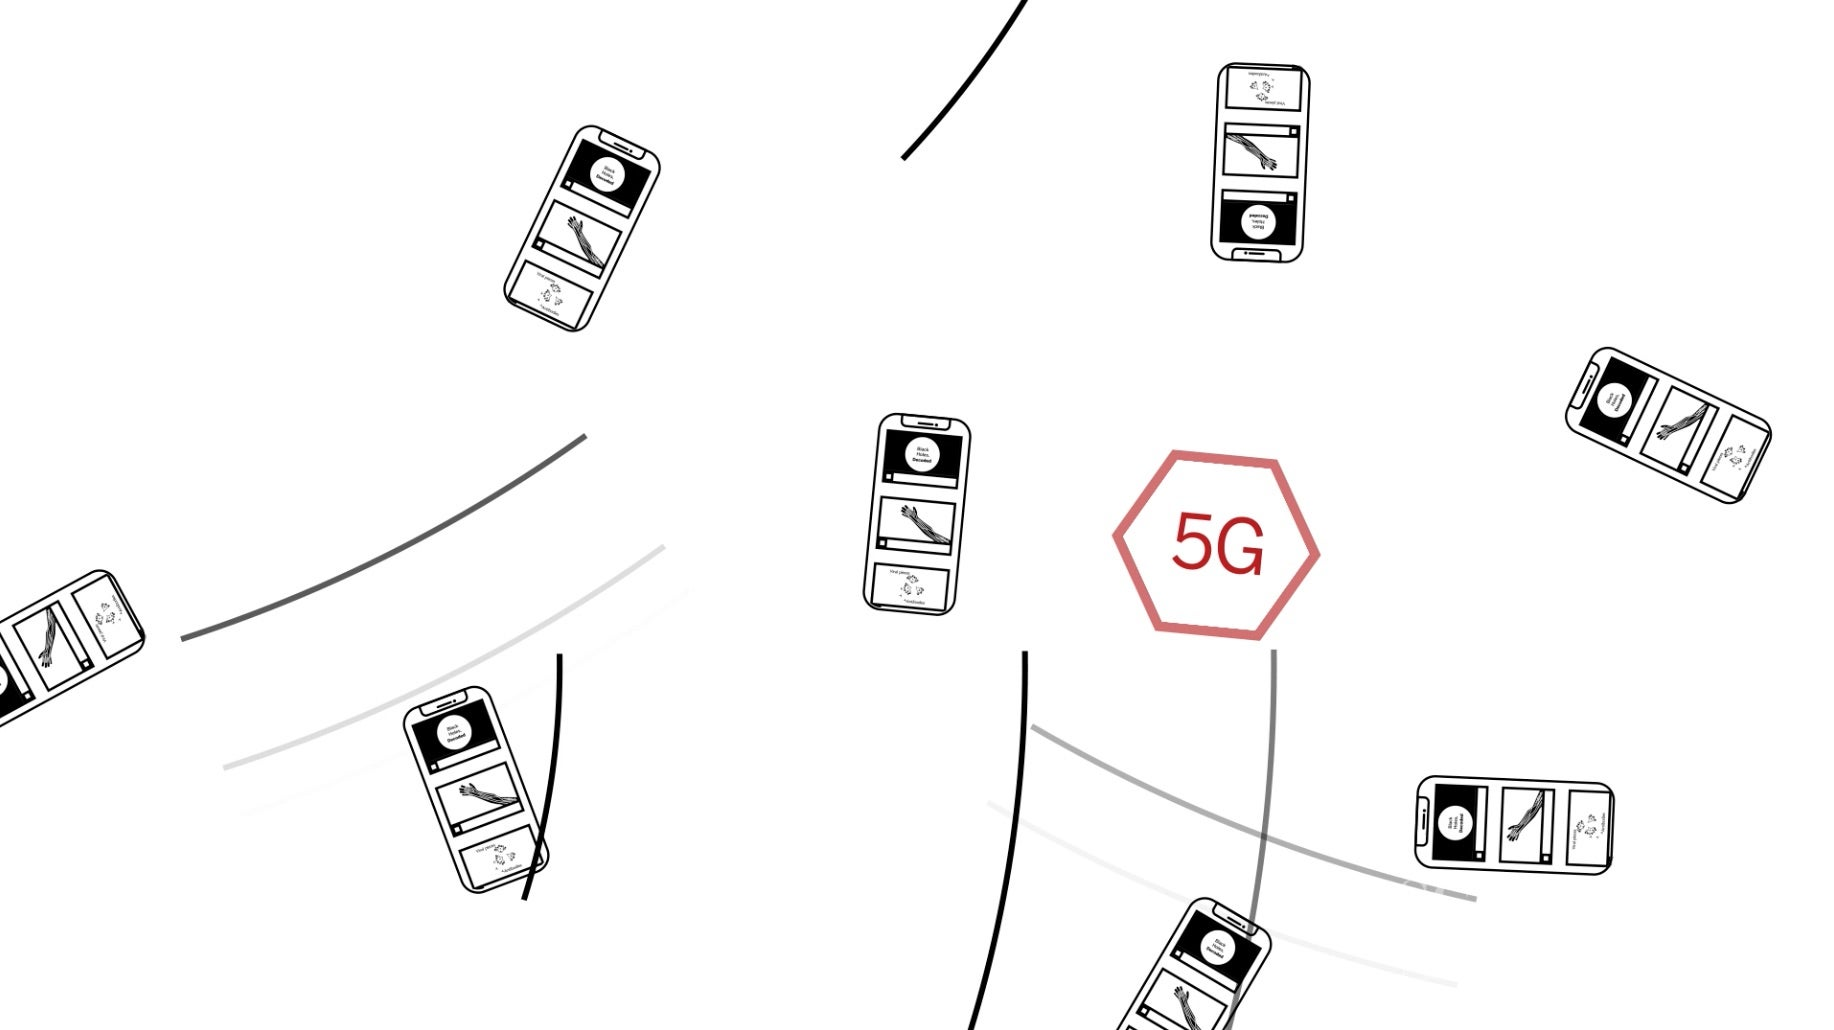 What Is 5G? Here Is a Short Video Primer